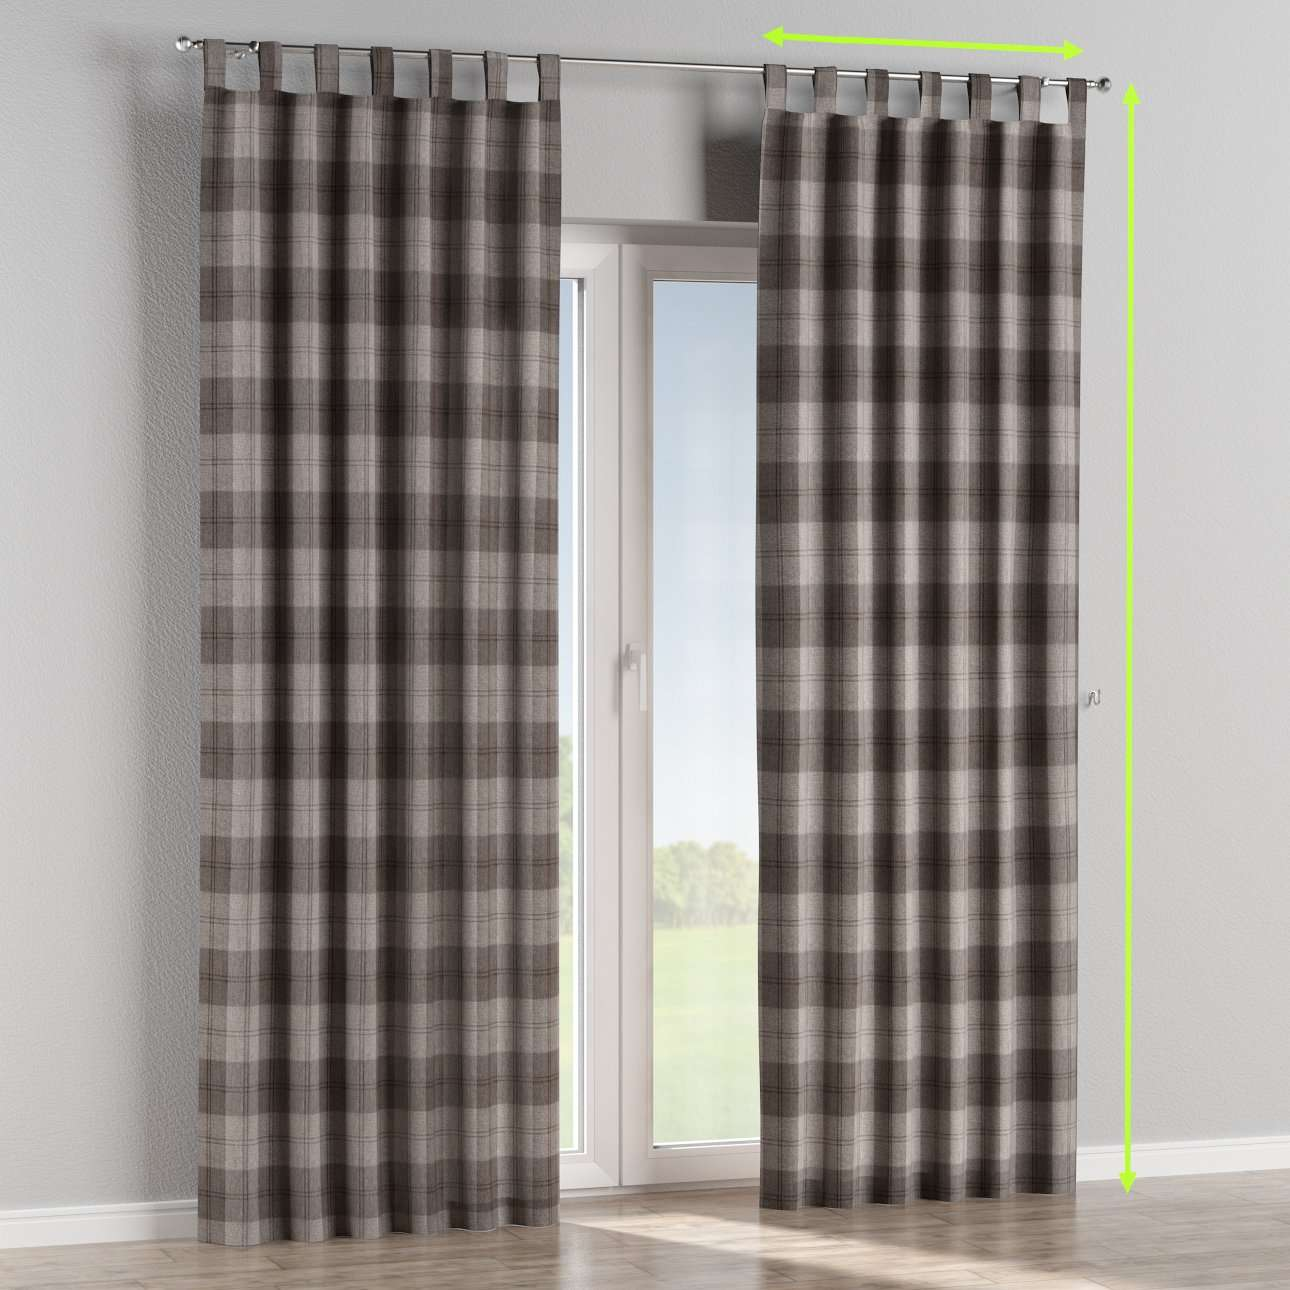 Tab top curtains in collection Edinburgh , fabric: 115-75